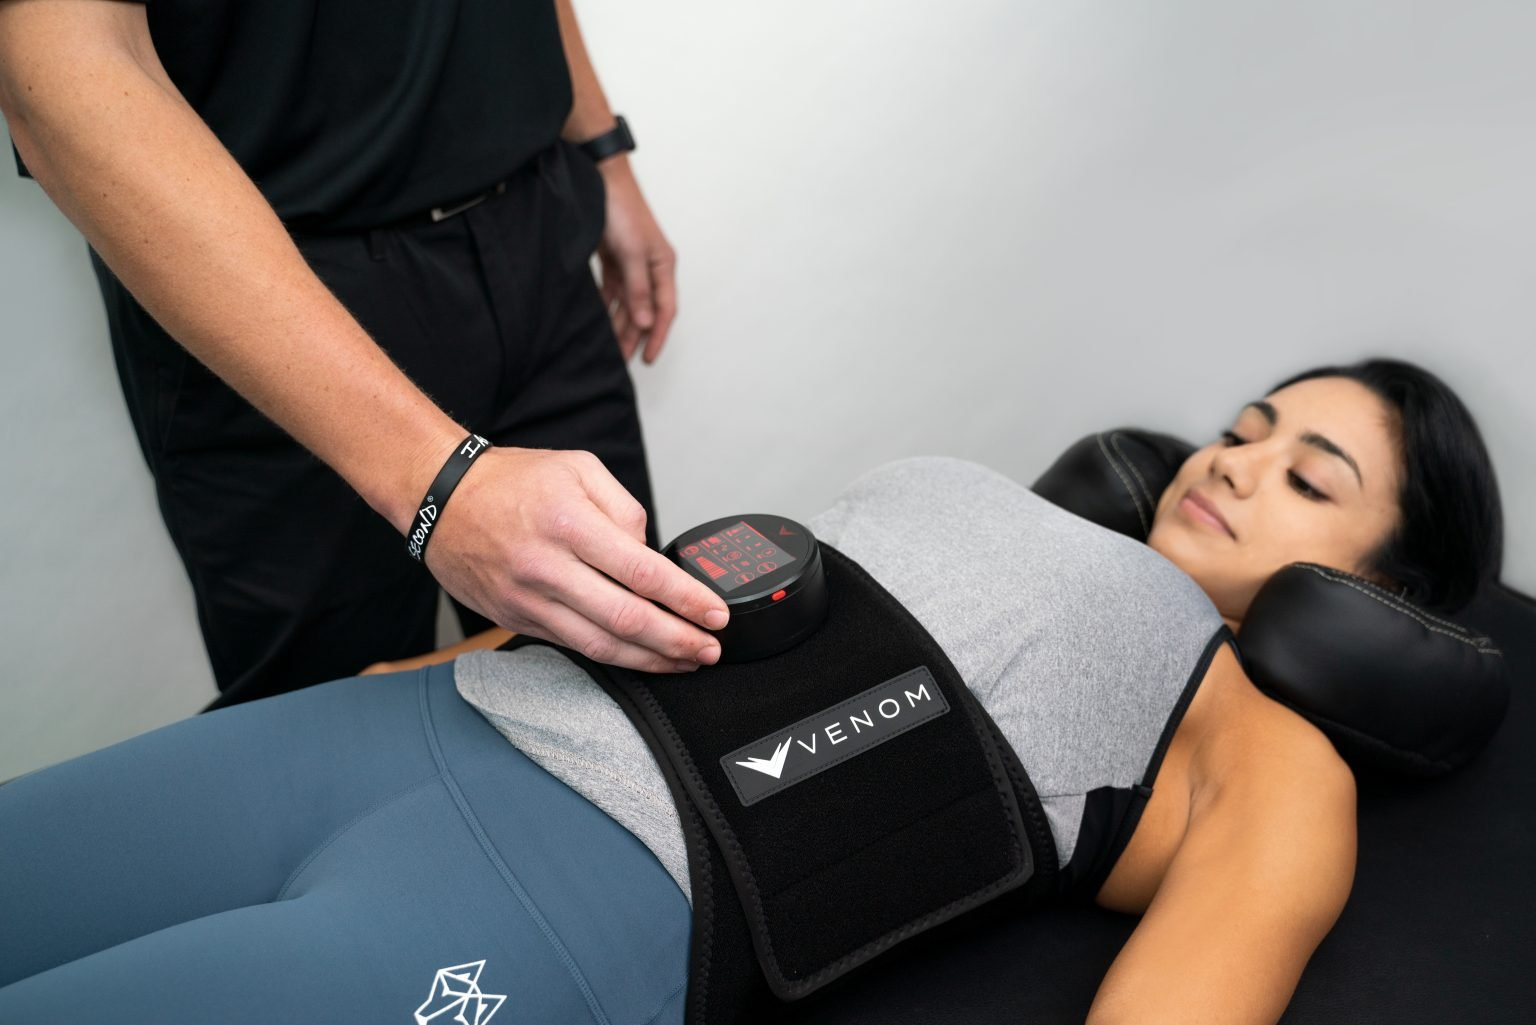 heat and vibration therapy